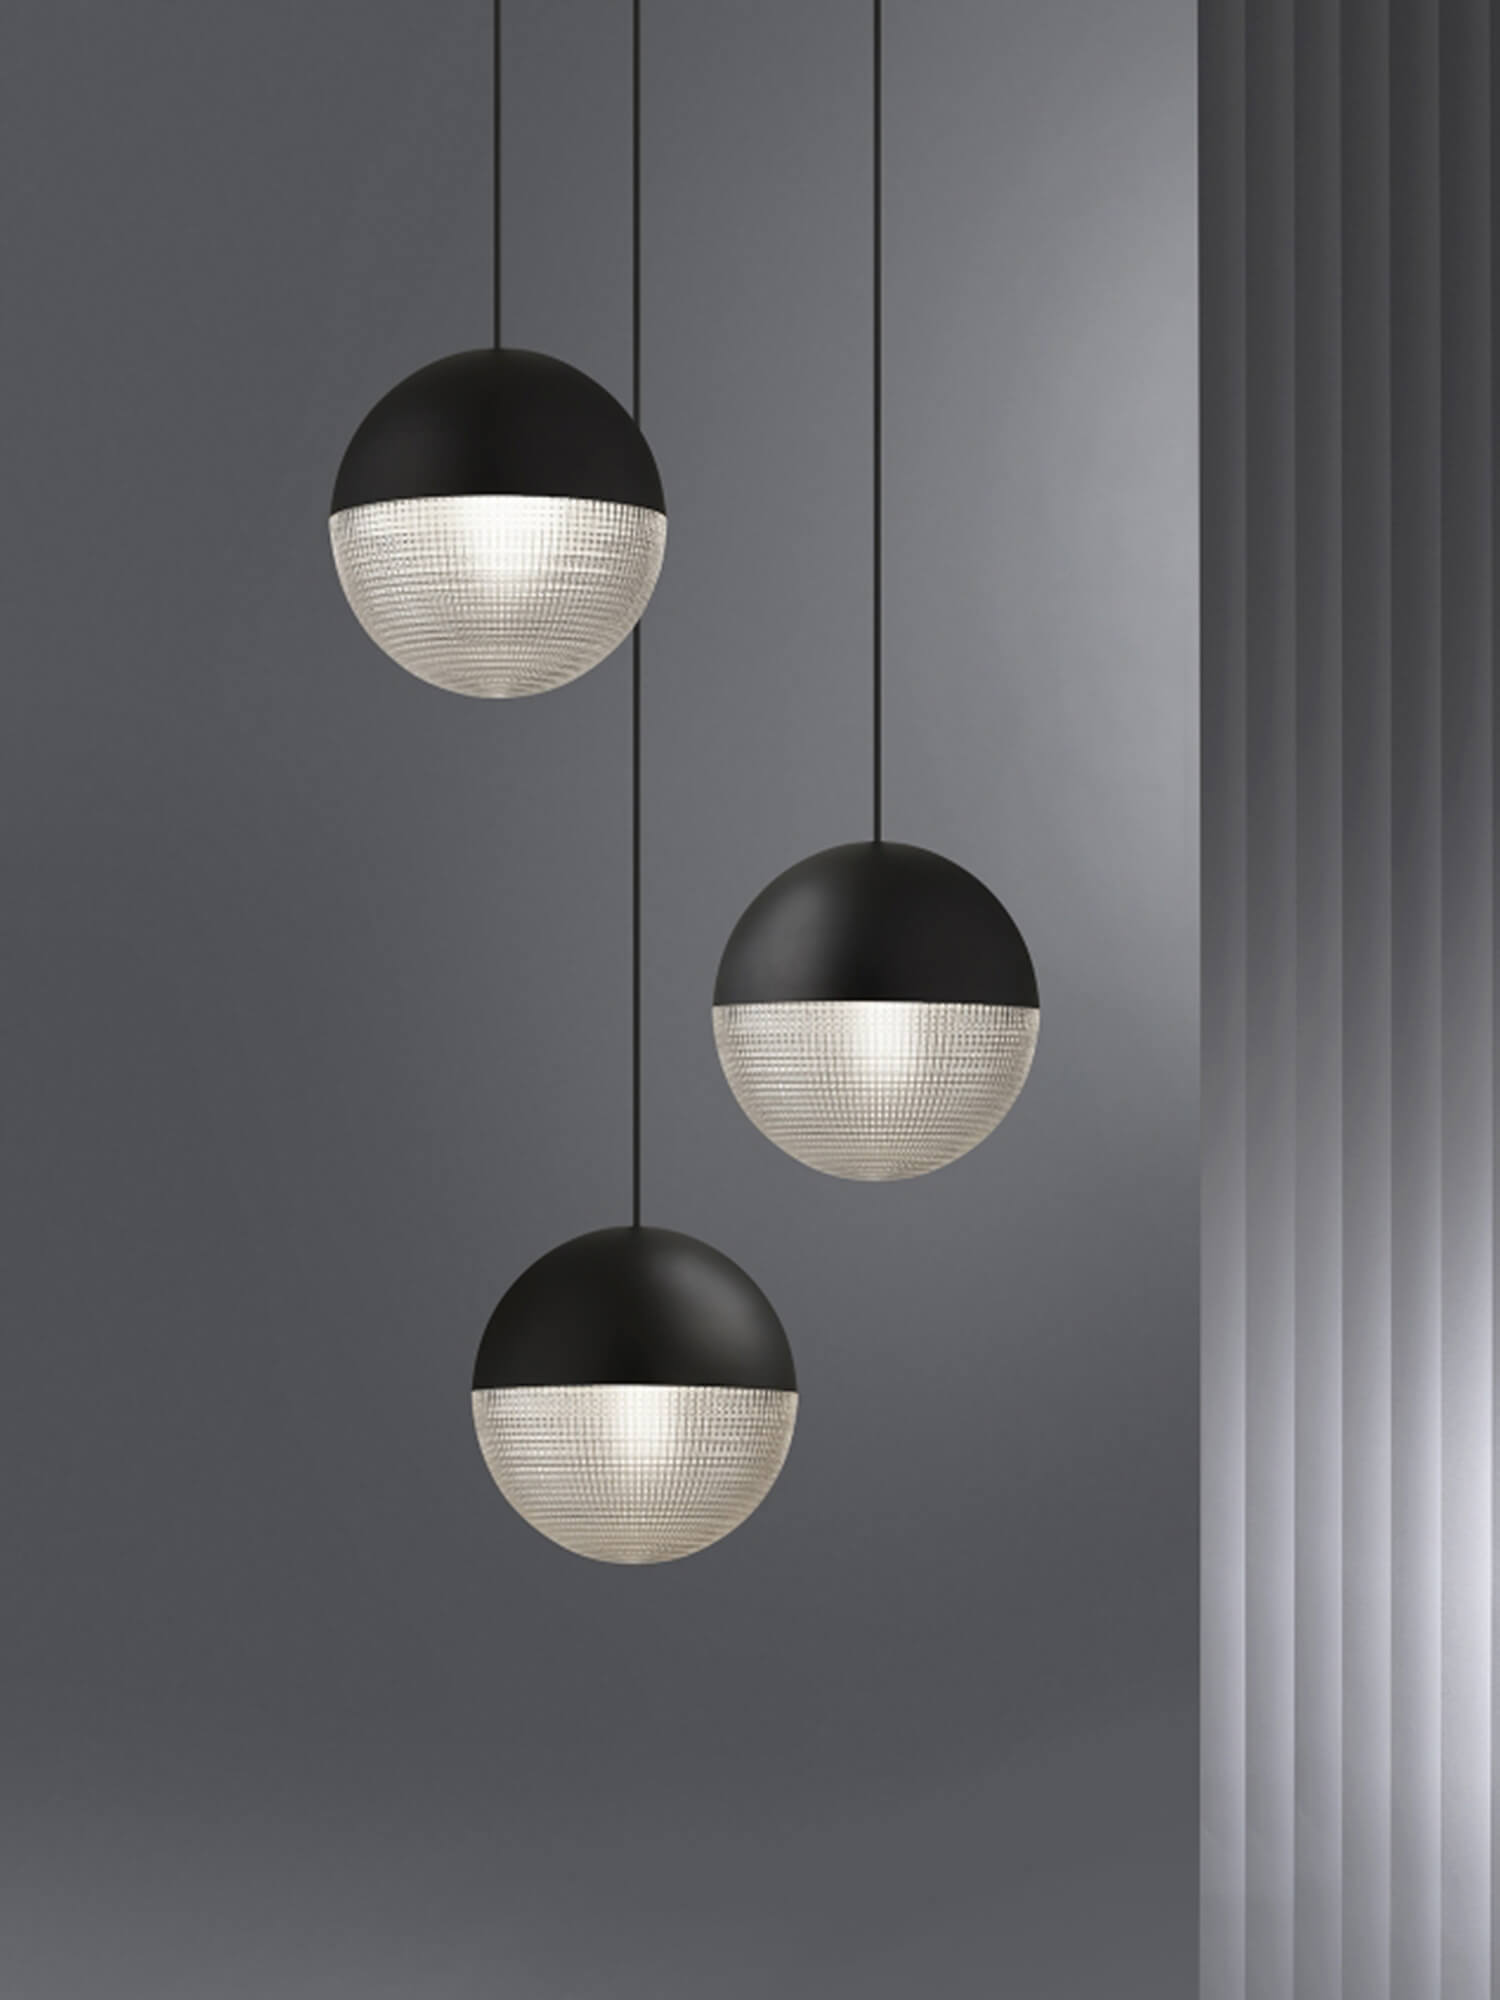 Observatory Lens Flair Pendant Lee Broom